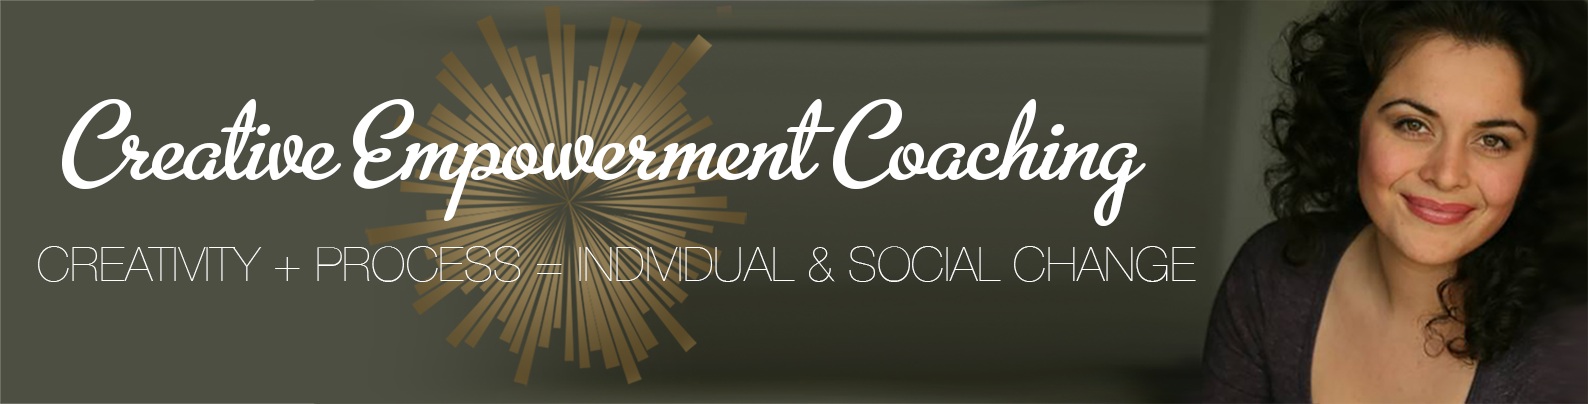 Creative Empowerment Coaching